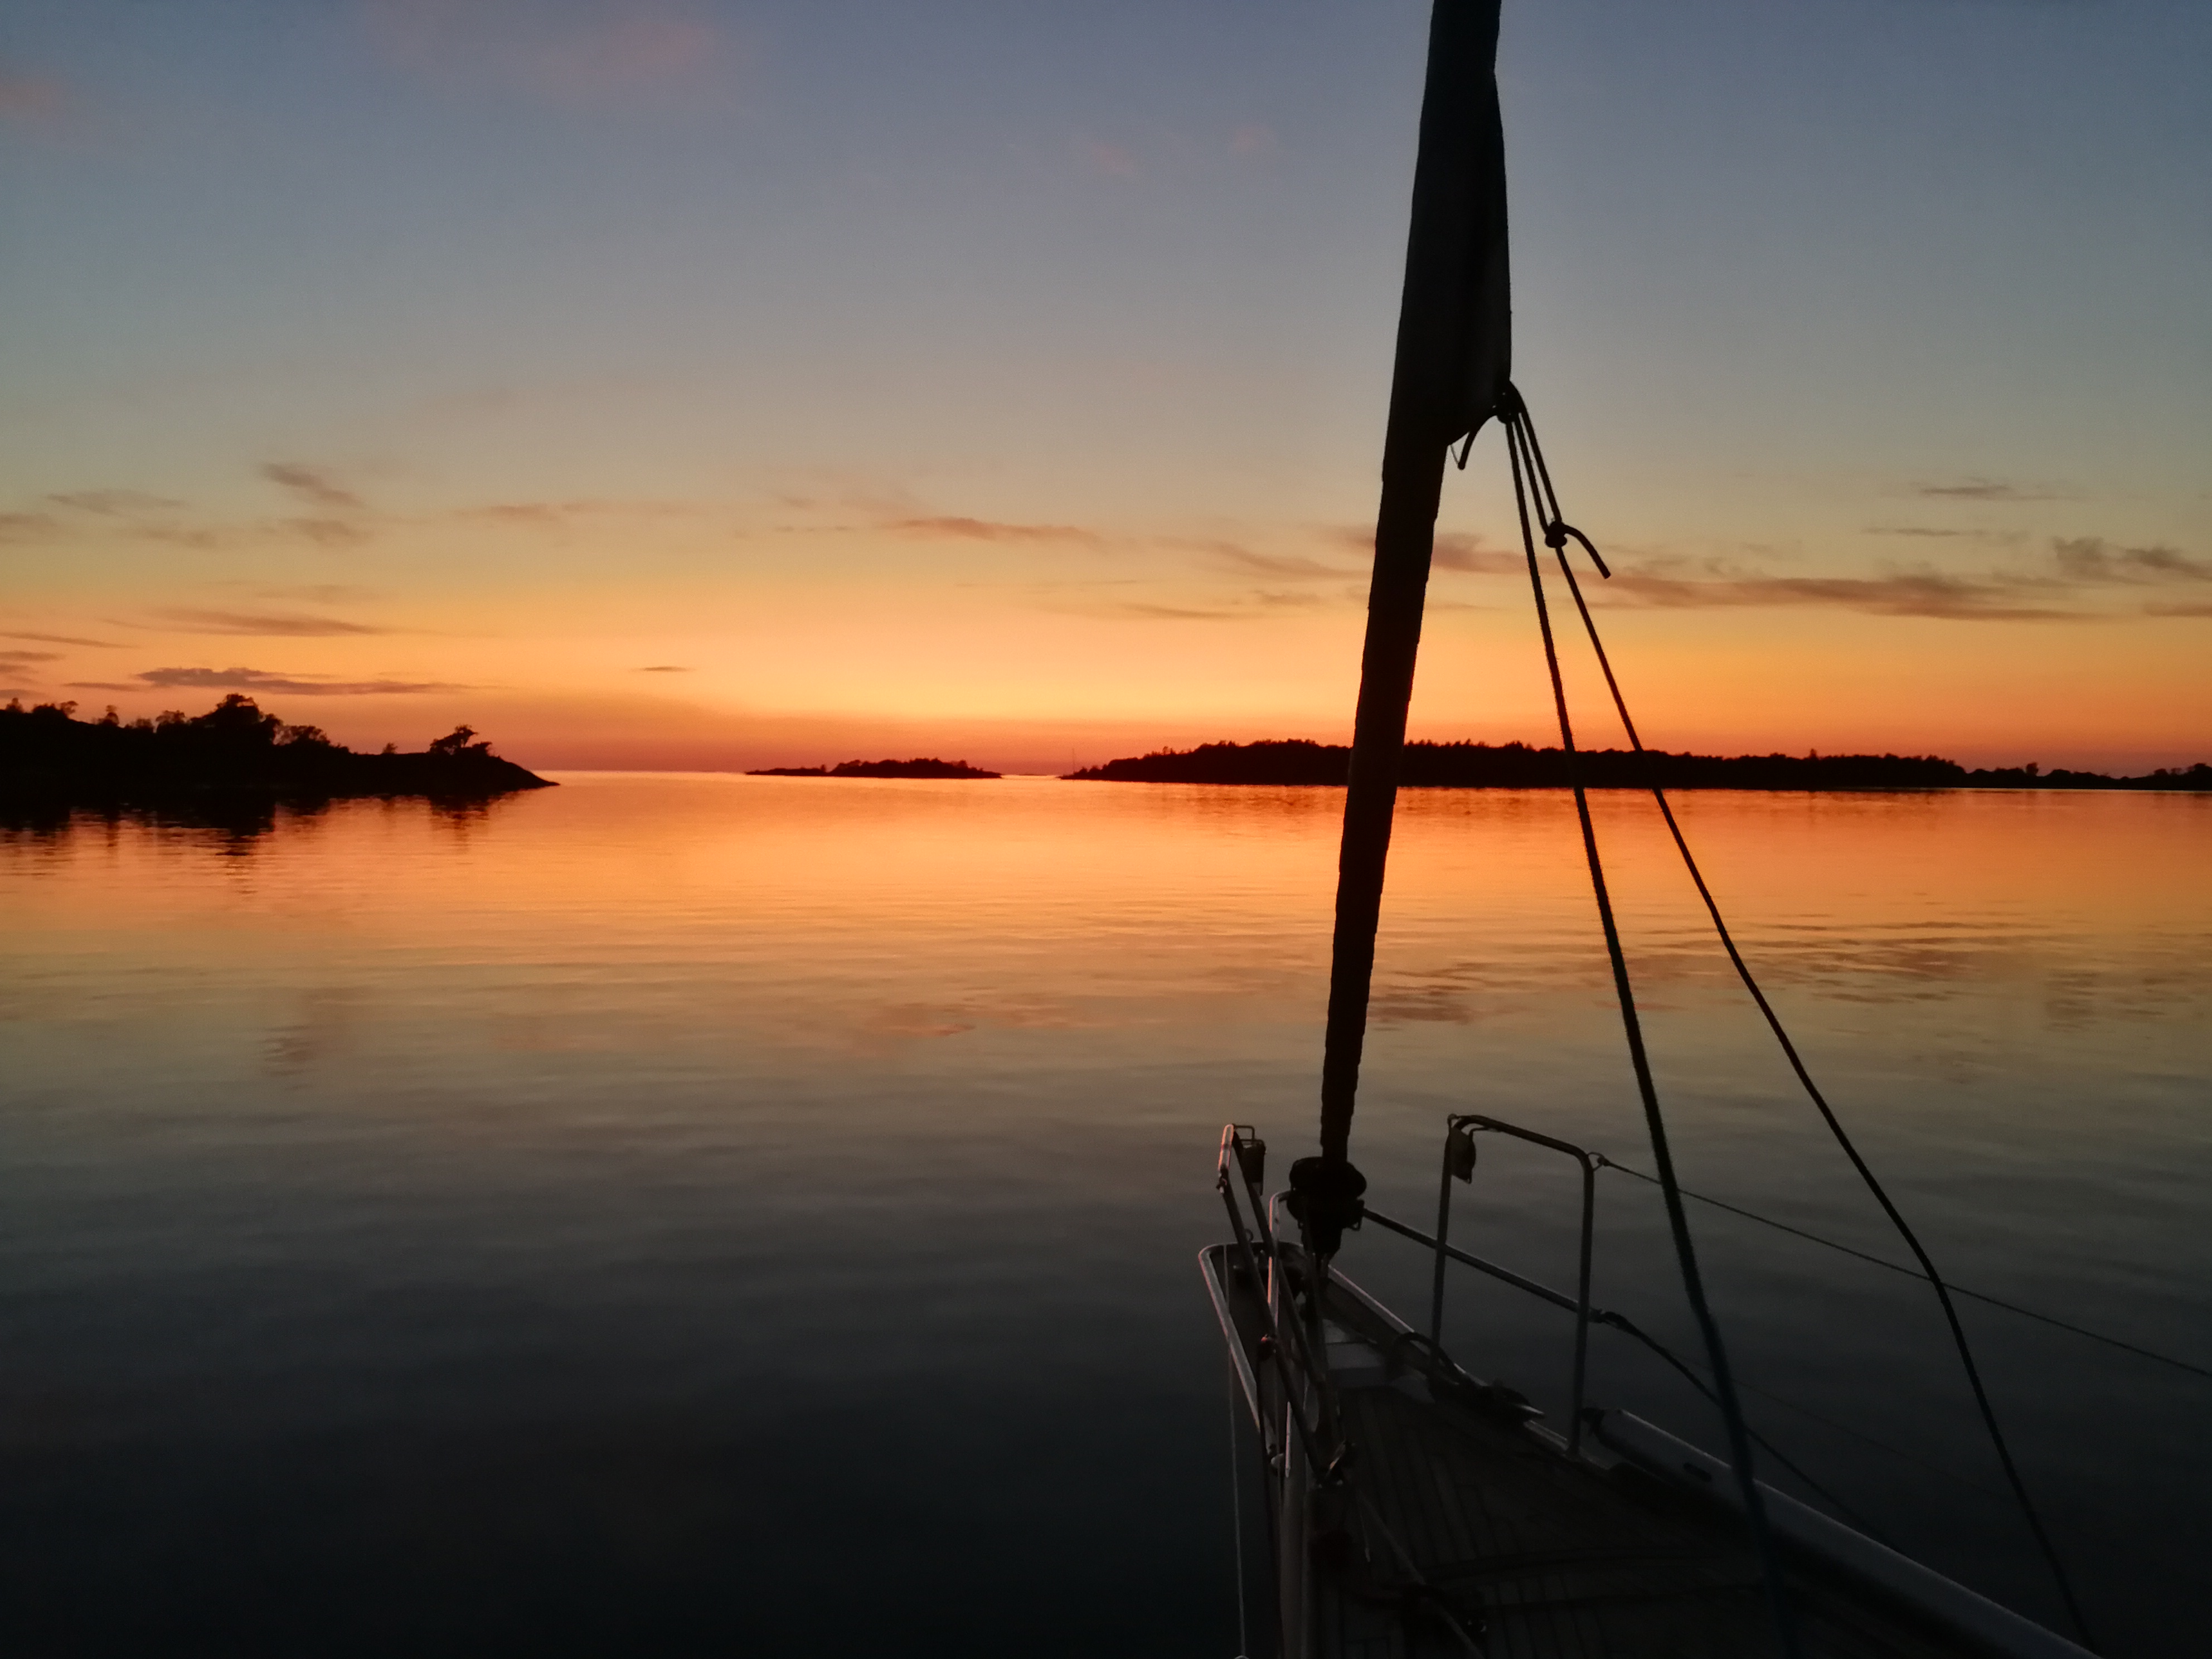 Sunset in the Baltic